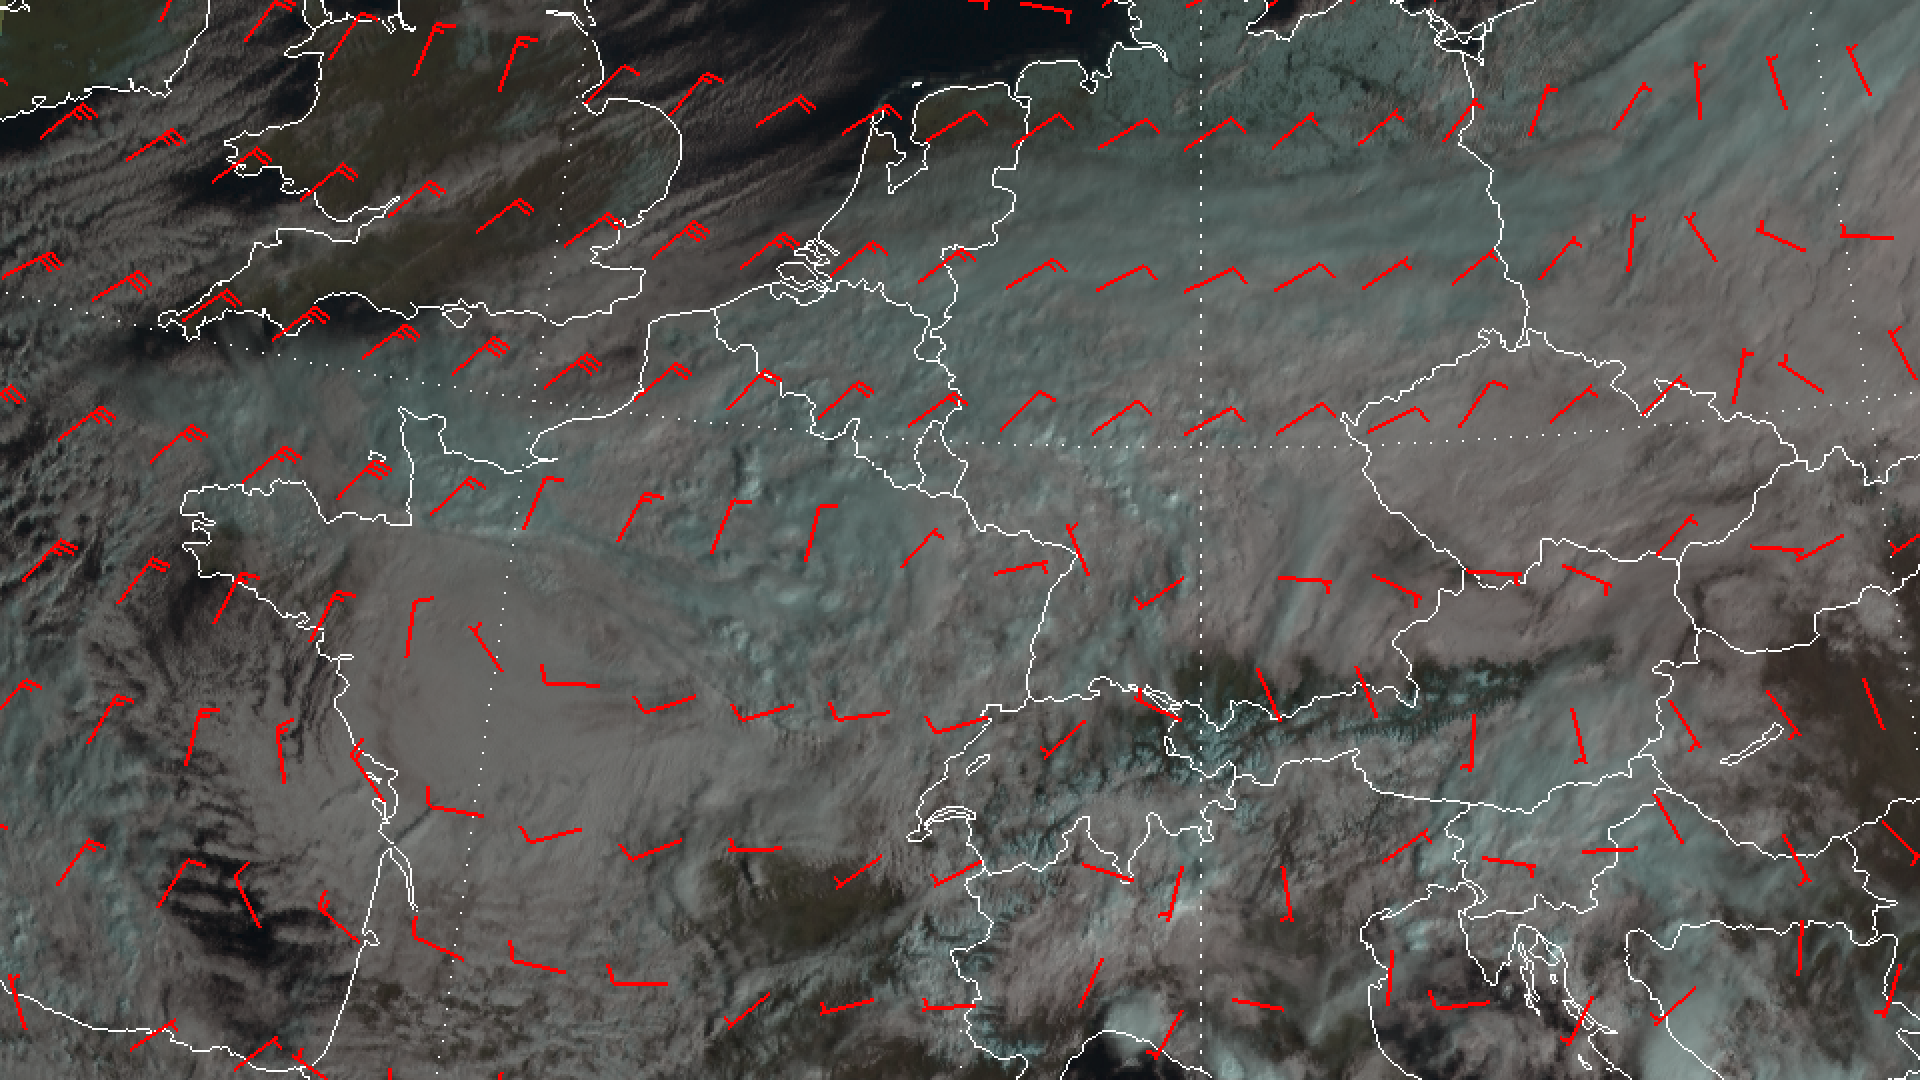 Low pressure system produced ontrasting weather across Europe